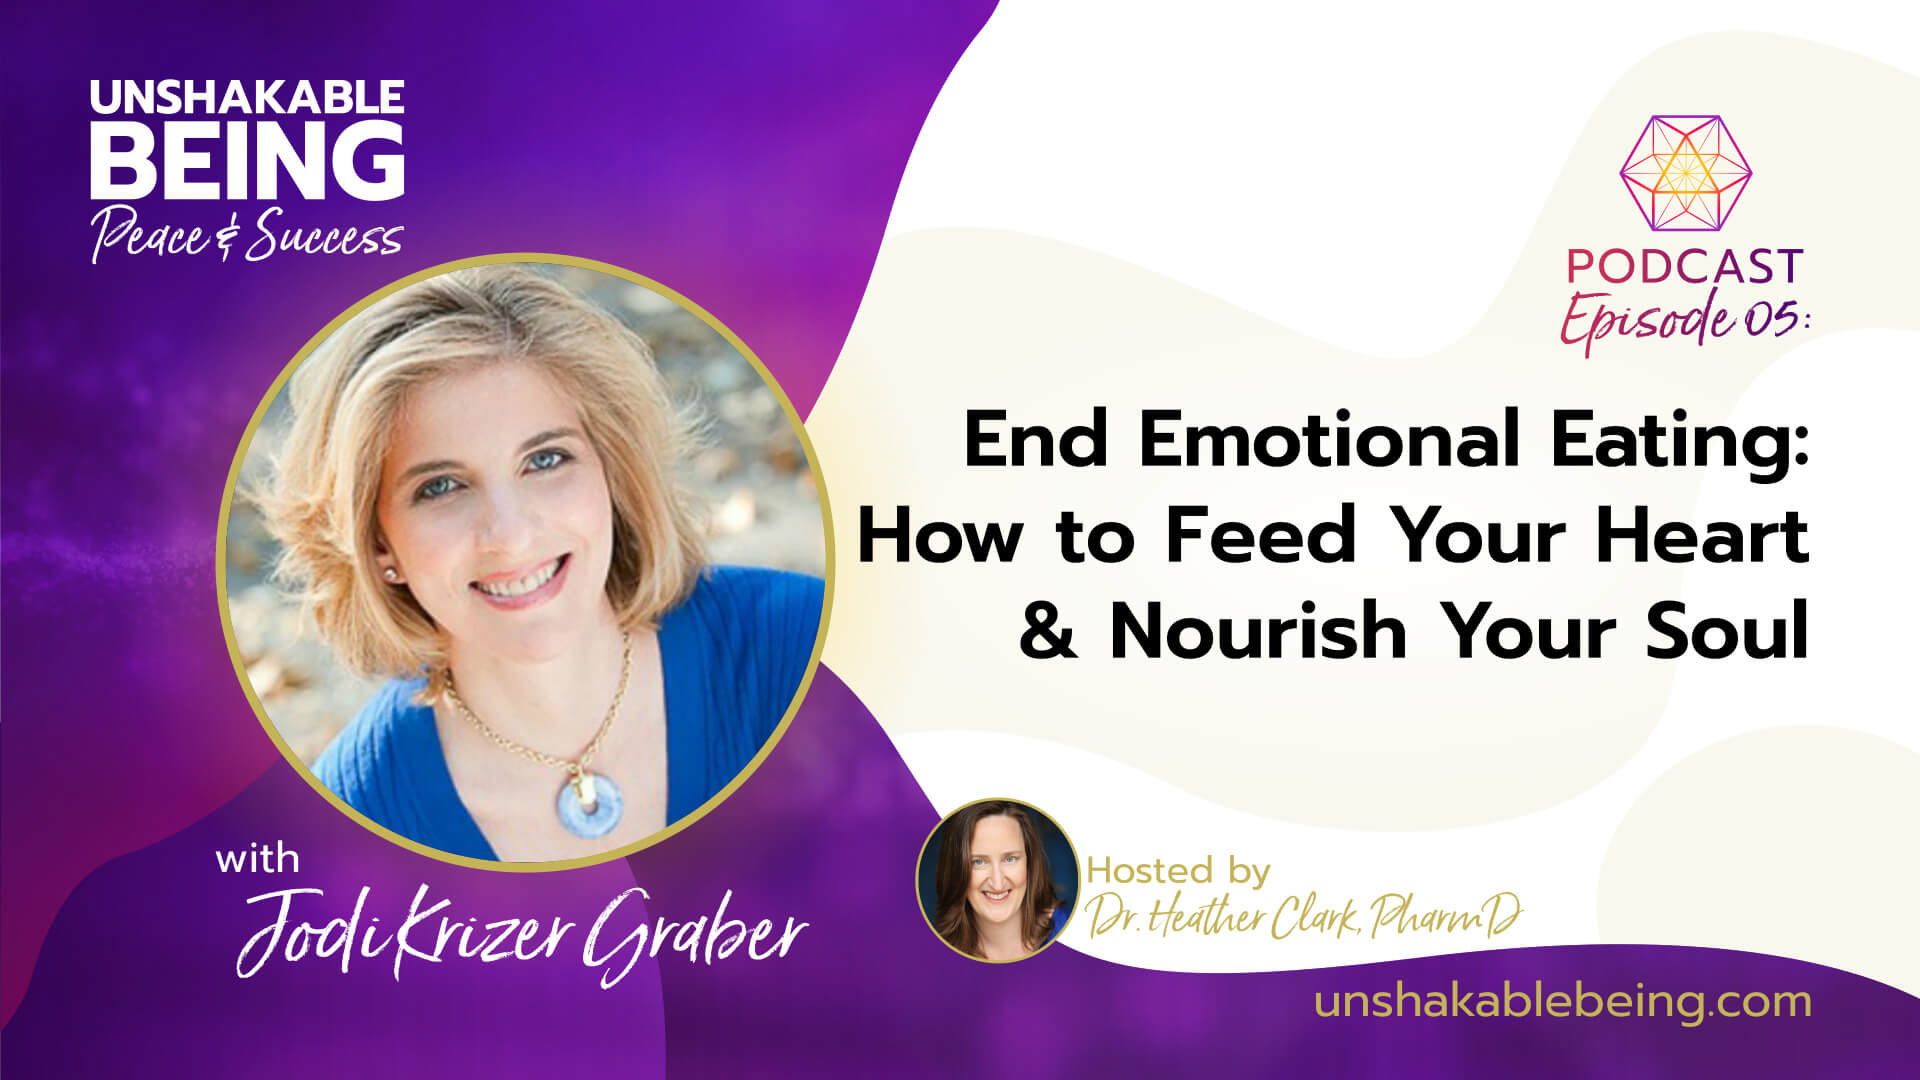 End Emotional Eating: How to Feed Your Heart & Nourish Your Soul | Jodi Krizer Graber